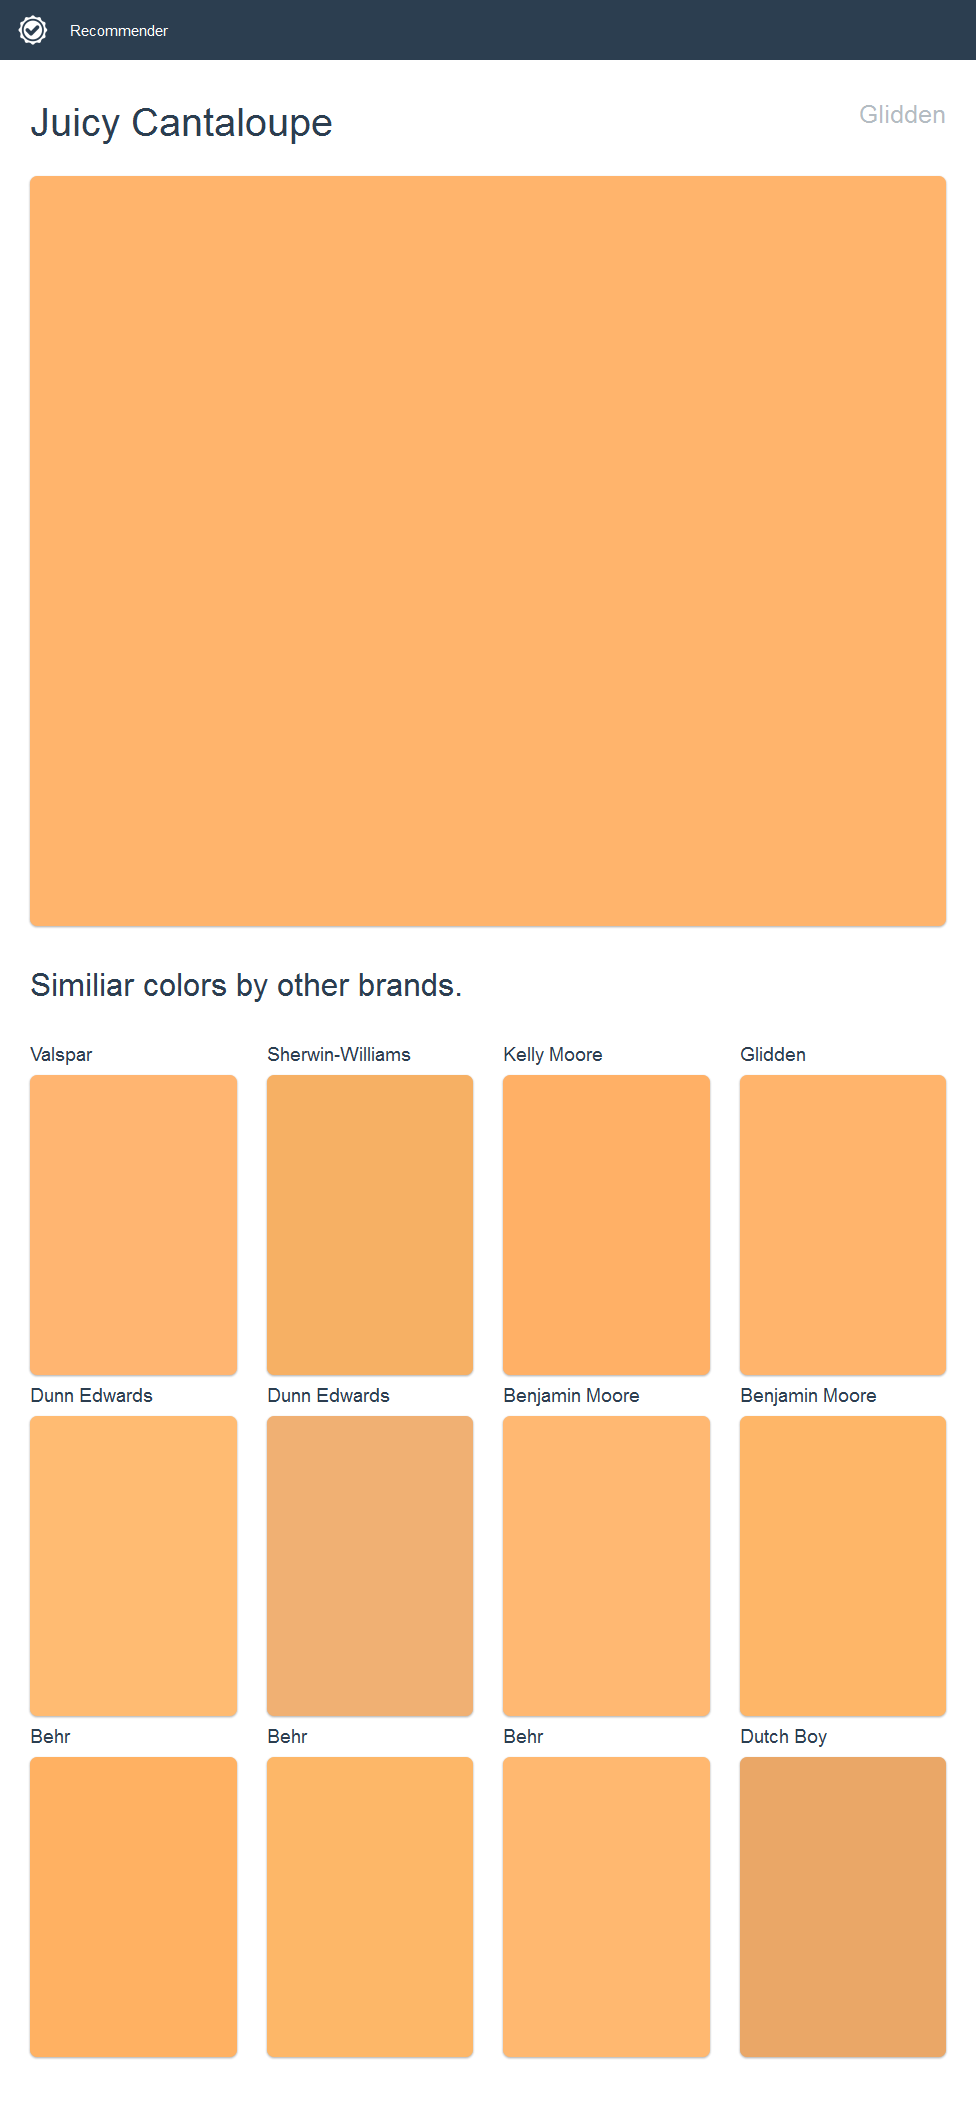 Juicy Cantaloupe Glidden Click The Image To See Similiar Colors By Other Brands